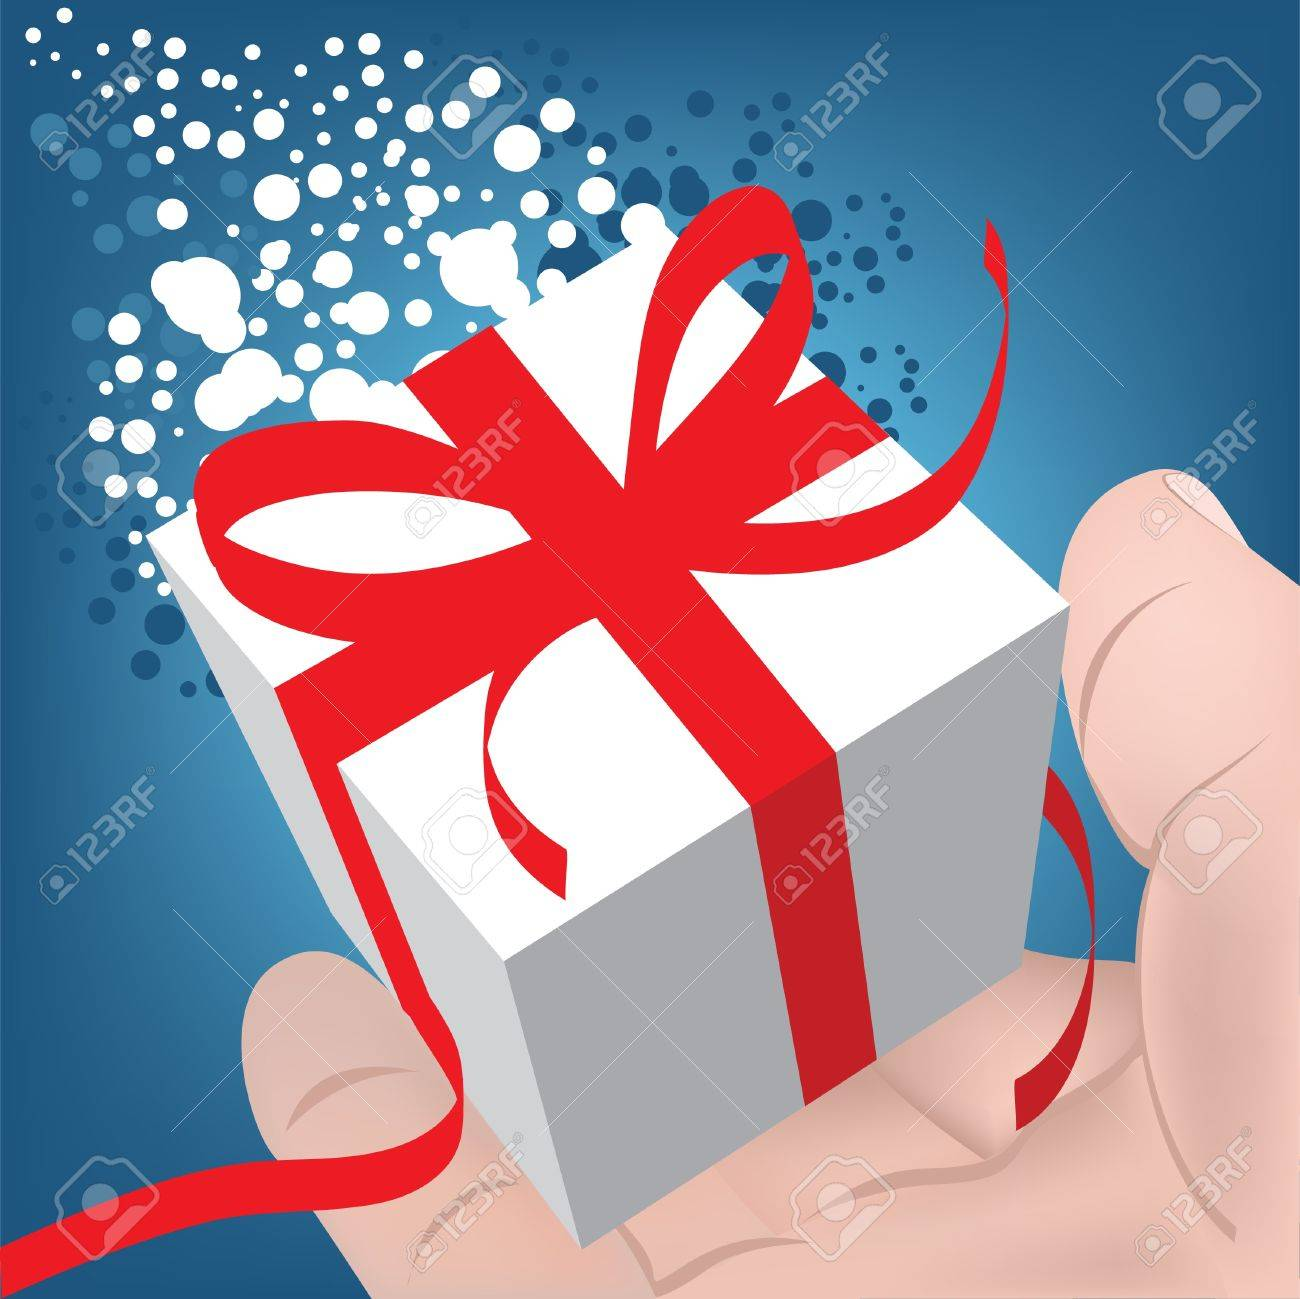 For you! Gift Box in a man's hand. Christmas gift. Stock Vector - 11242202